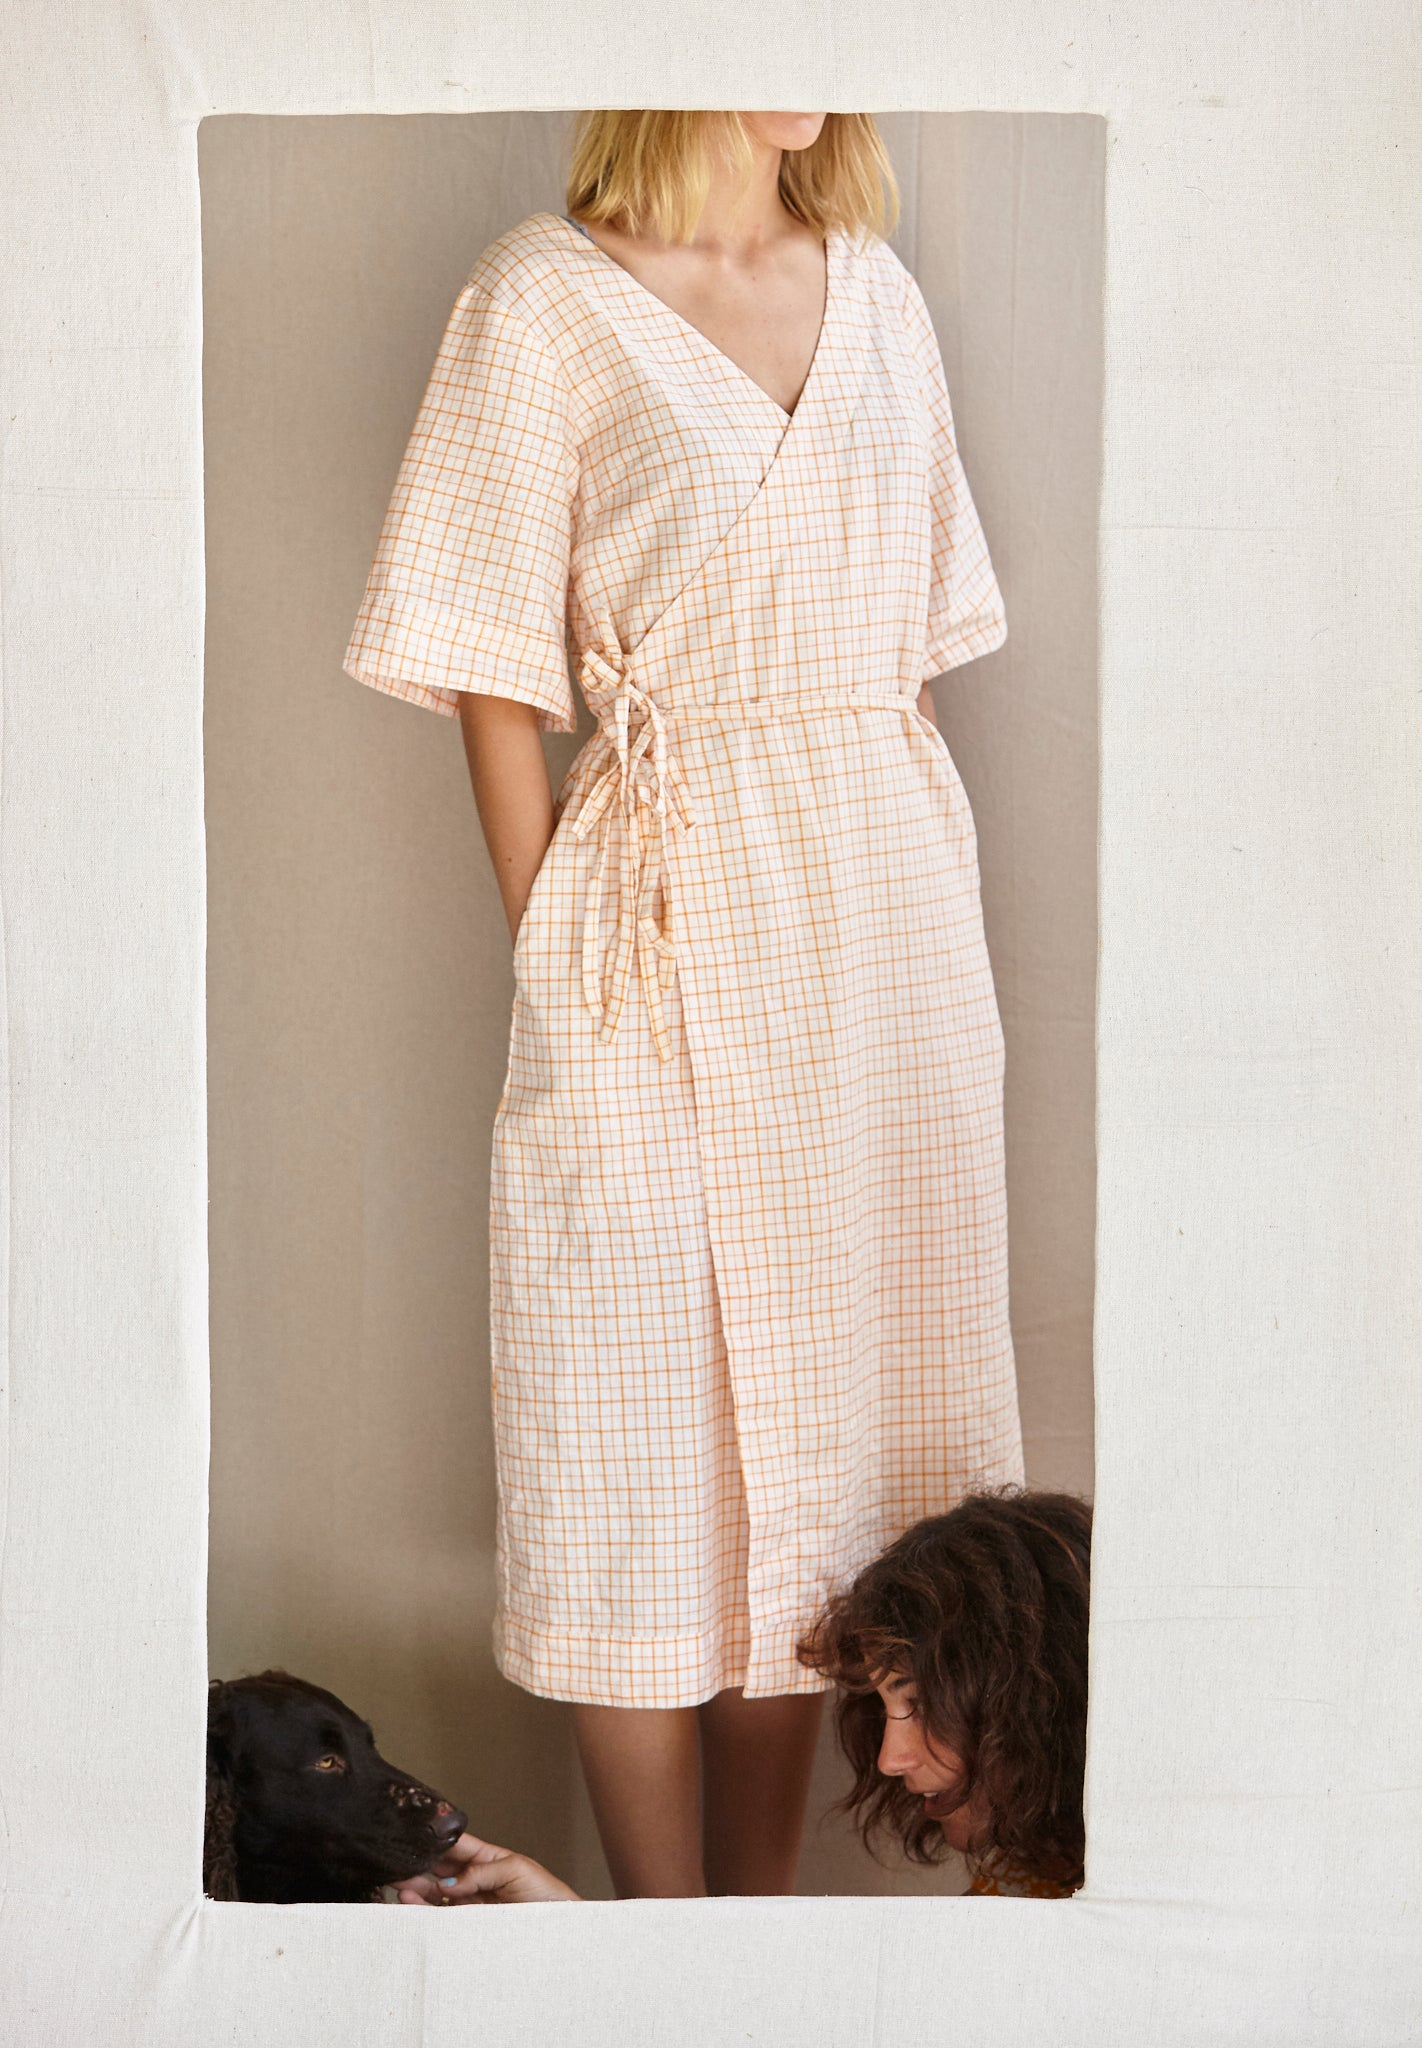 The Robe Dress - white with orange grid in hand-woven khadi.